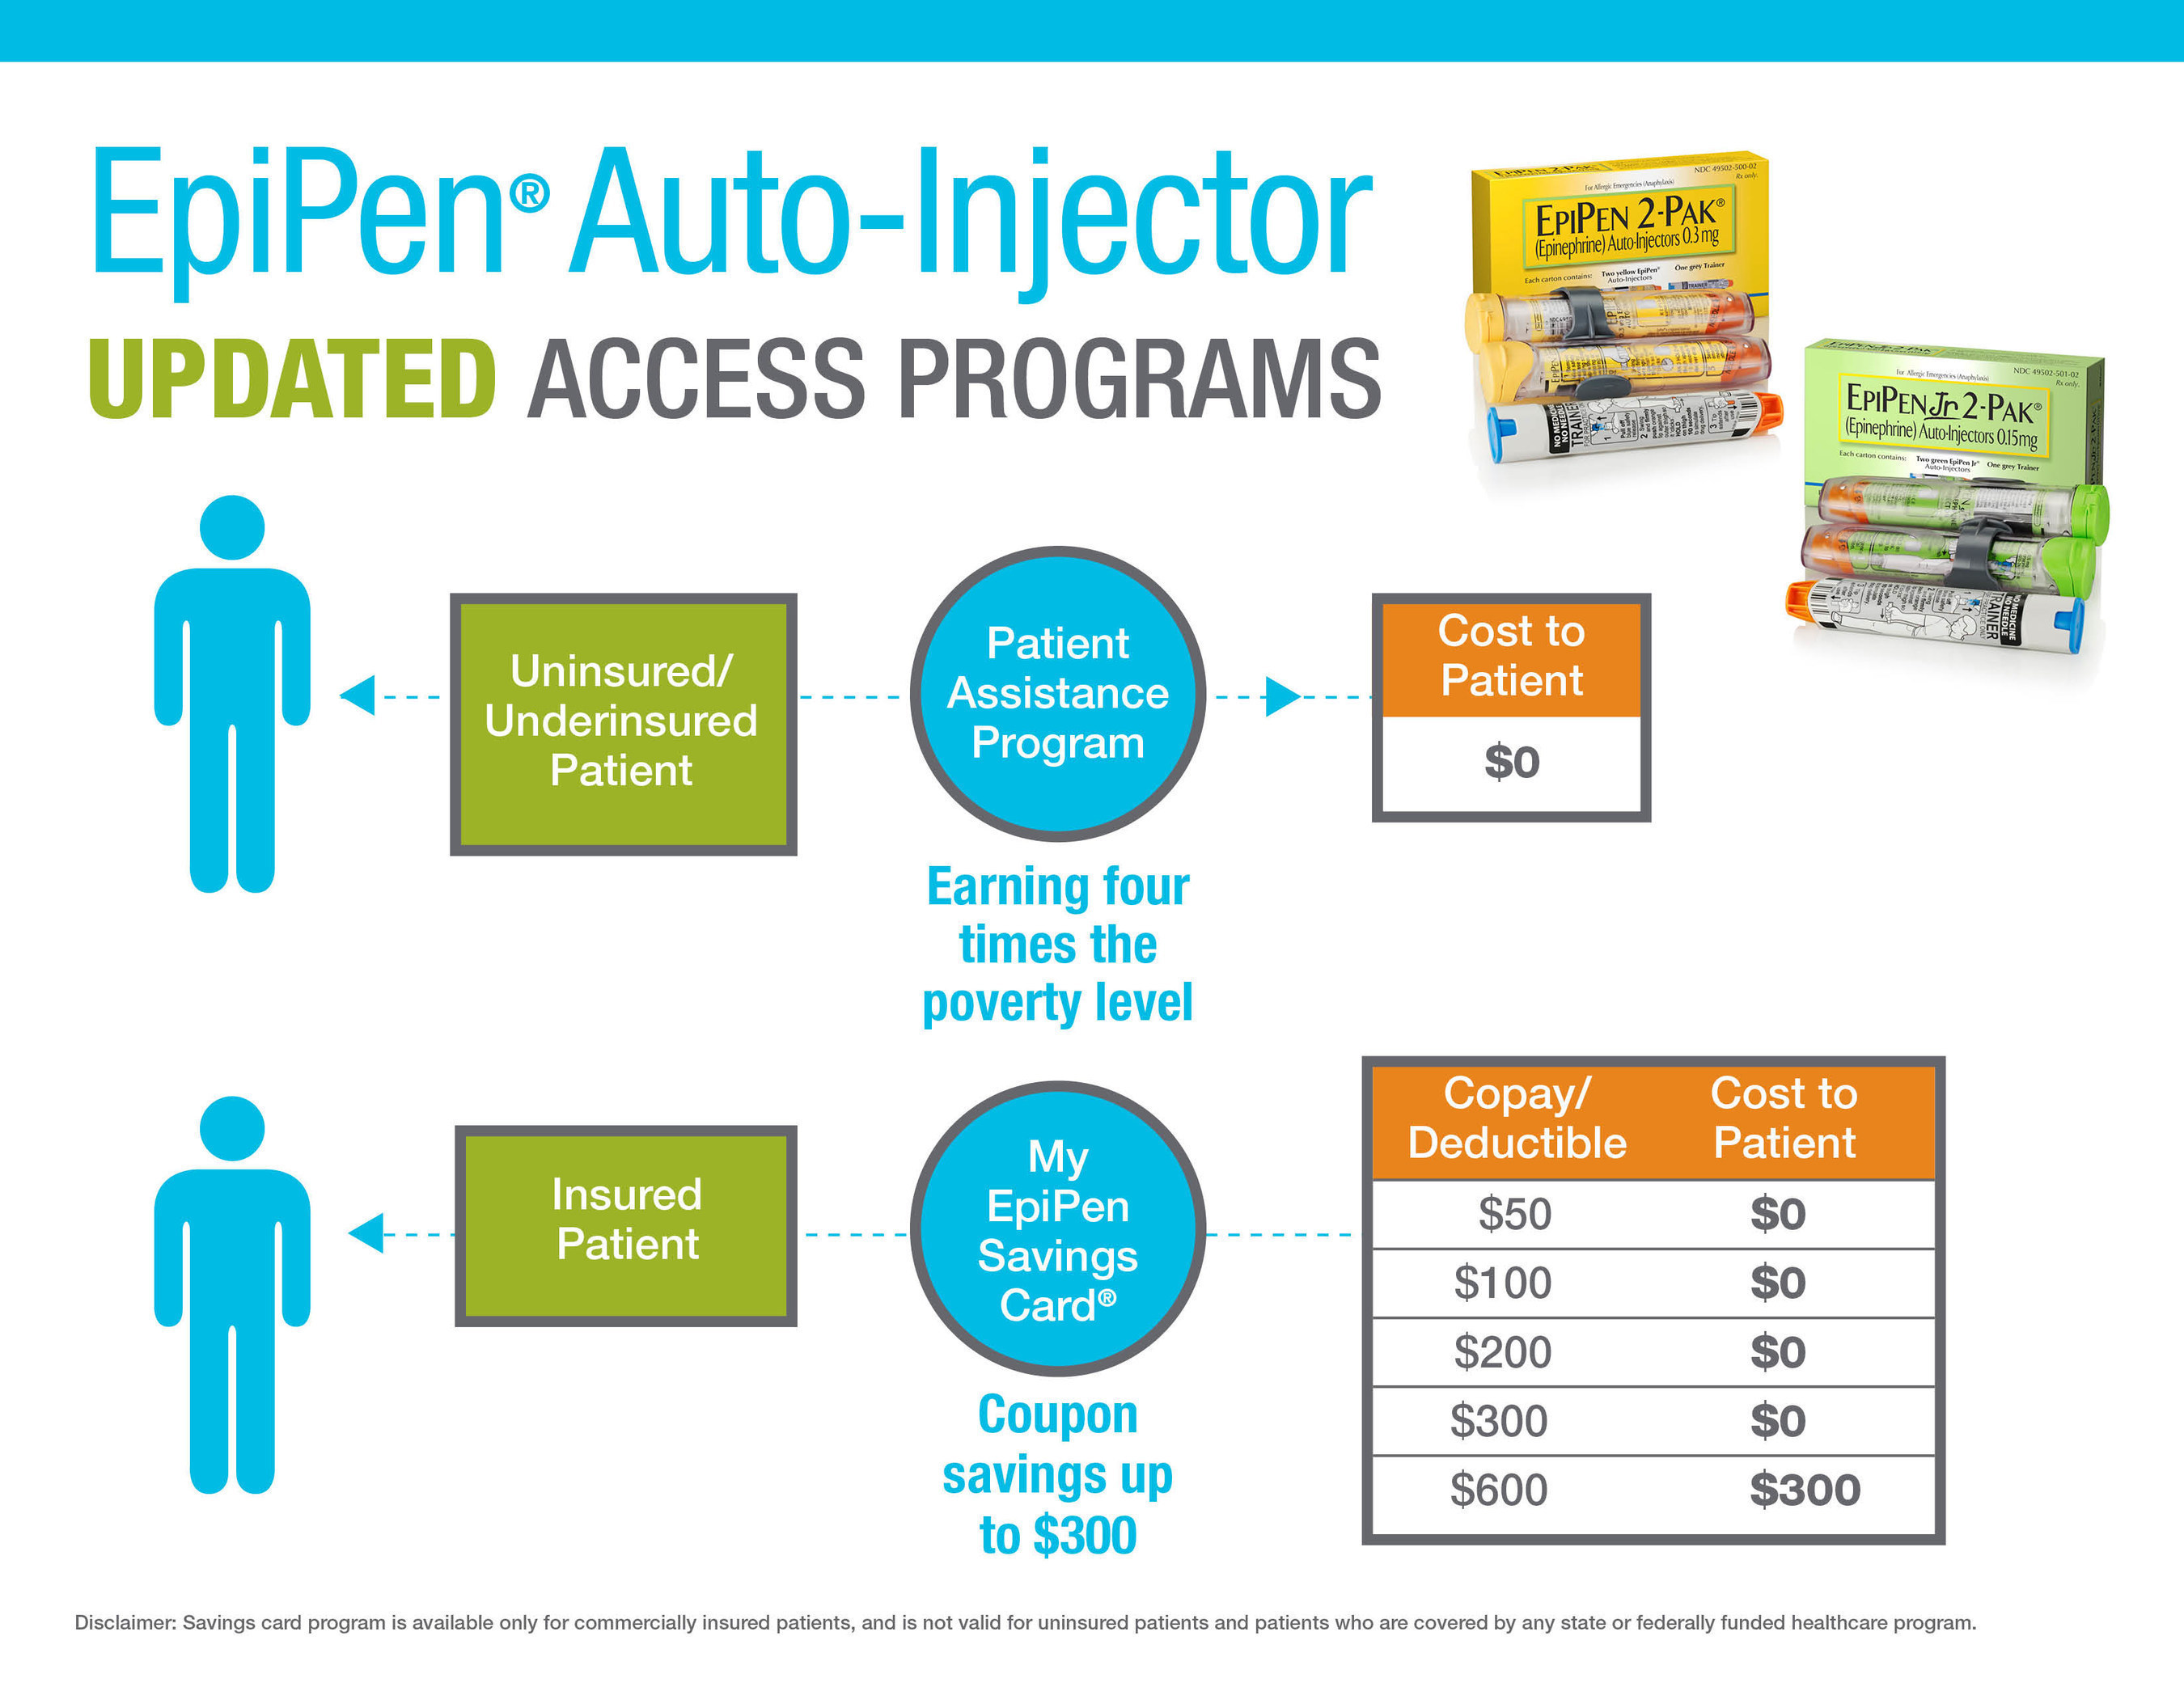 EpiPen(r) (epinephrine injection, USP) Auto-Injector Updated Access Programs